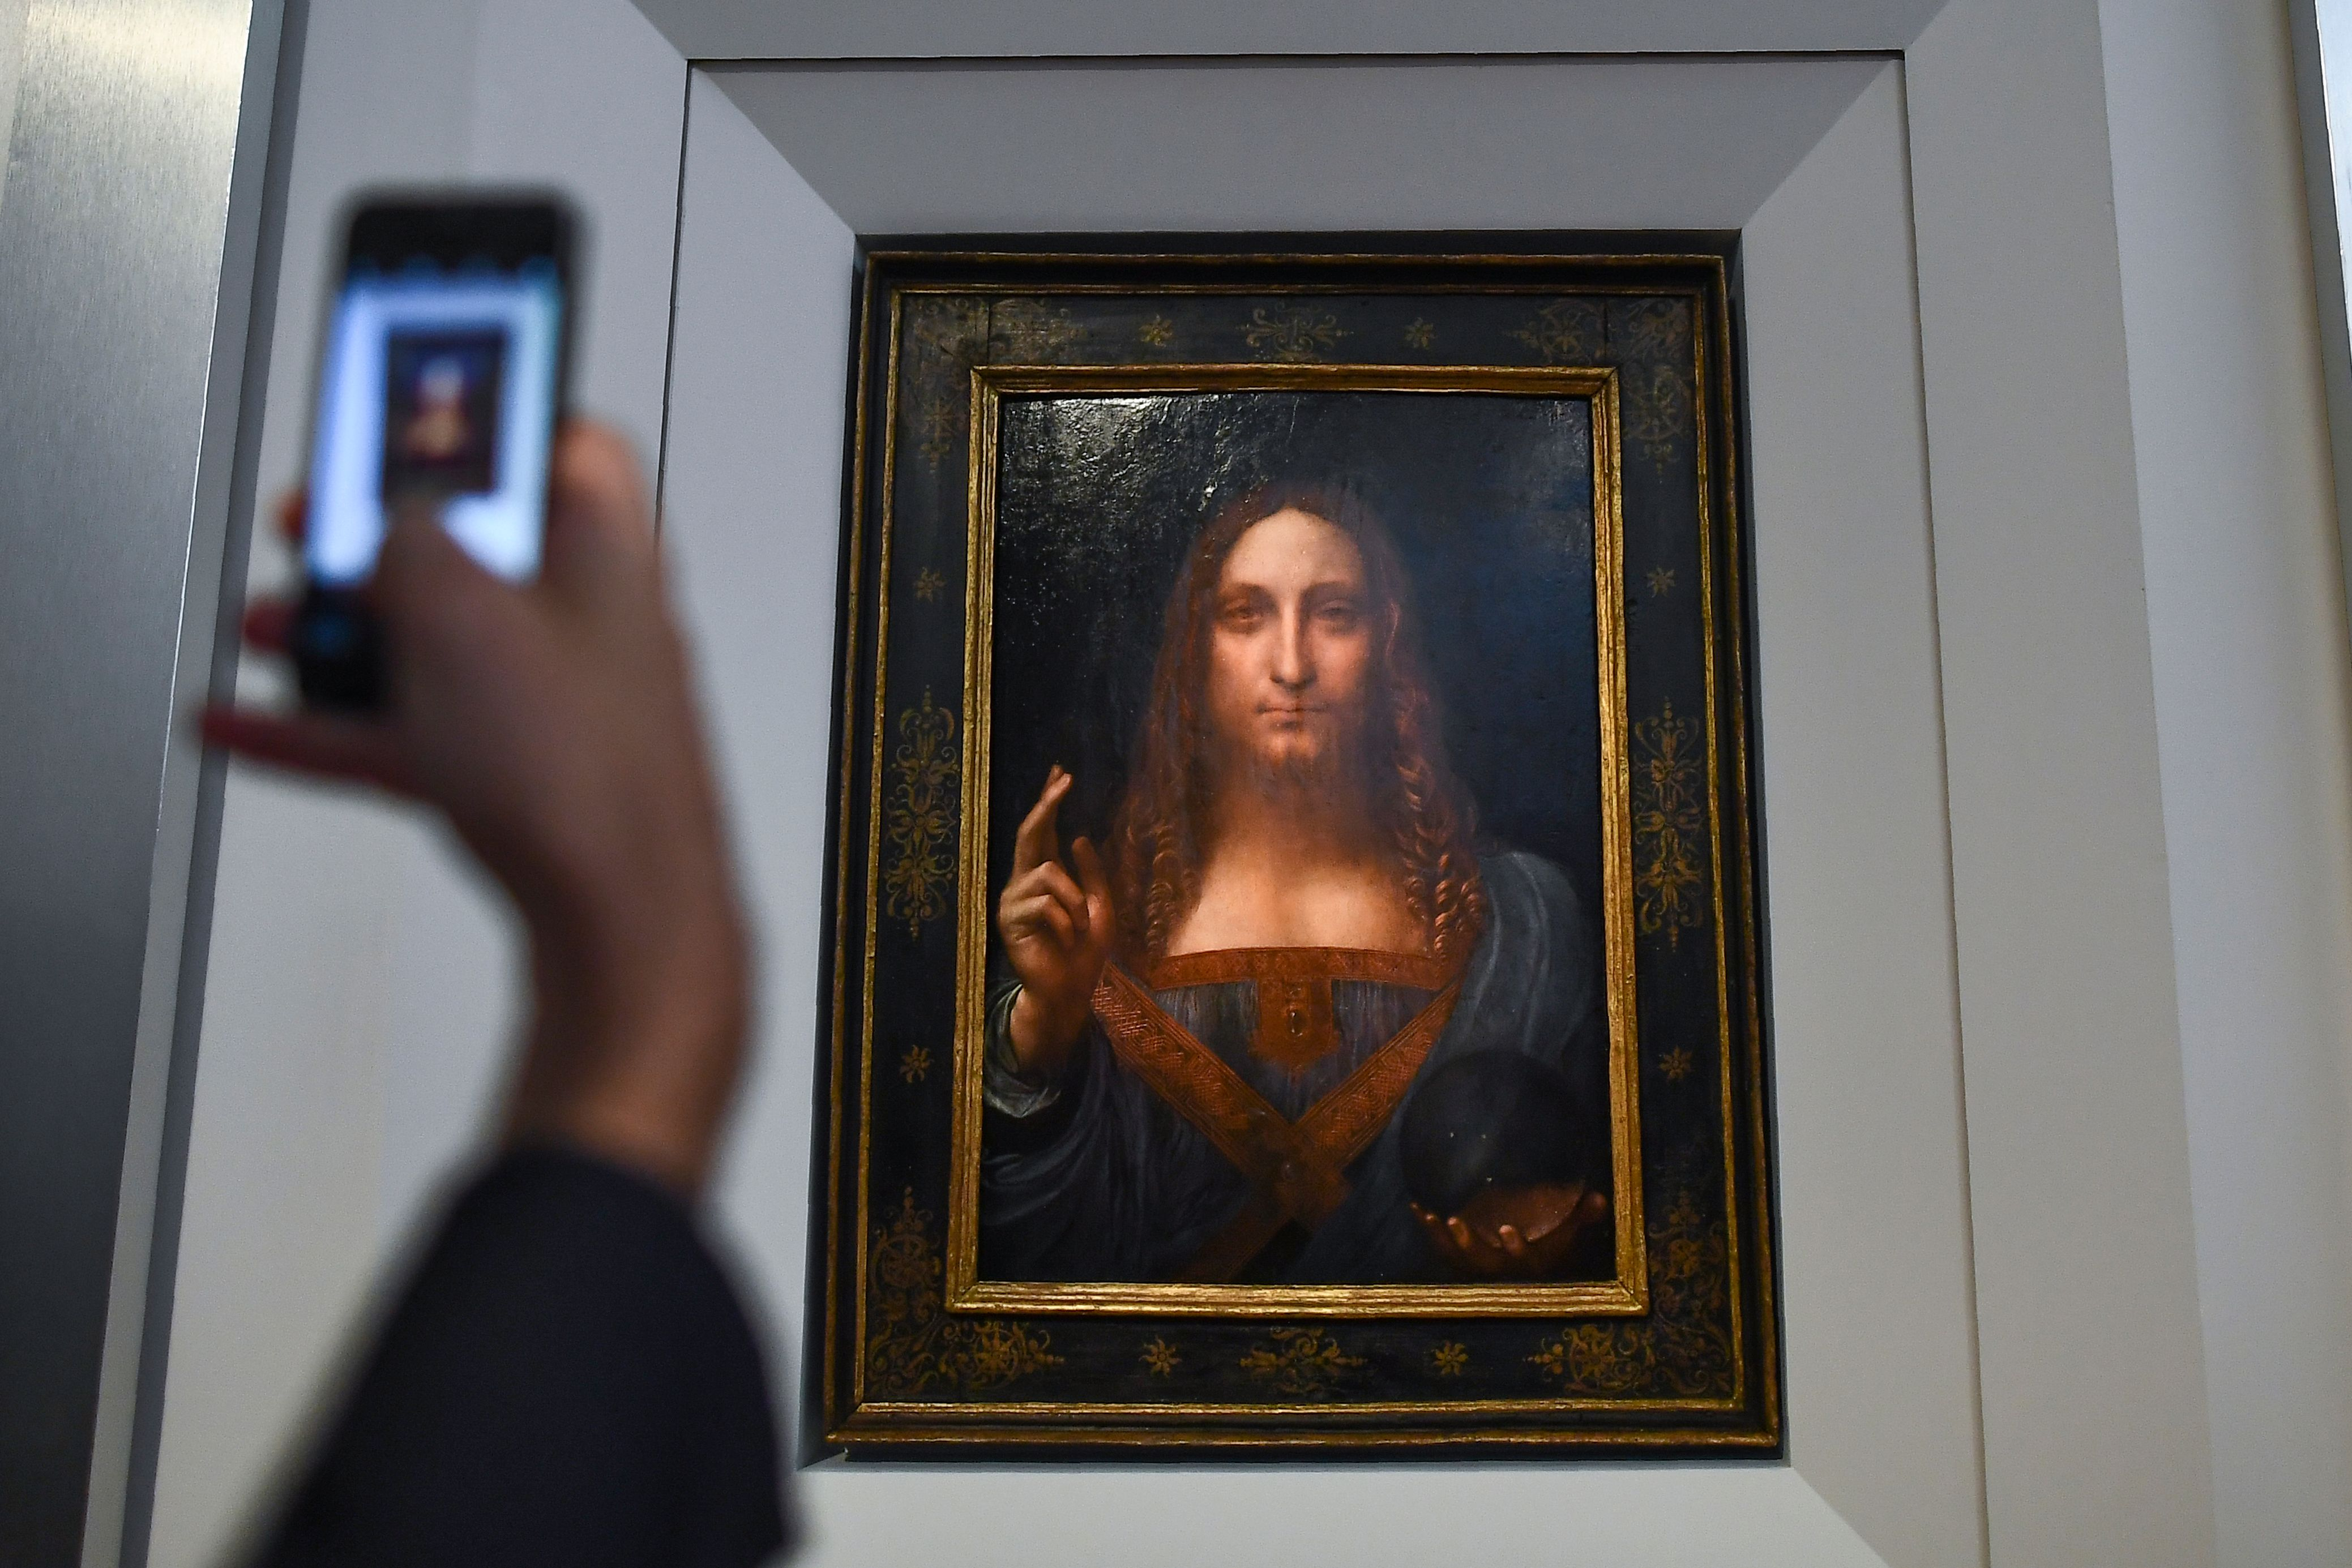 """A journalist takes photos of Leonardo da Vinci's """"Salvator Mundi"""" after it was unveiled at Christie's in New York on October 10, 2017. One of fewer than twenty painting by Leonardo da Vinci and the only one in private hands, the Salvator Mundi will be offered in Christie's Evening Sale of Post-War and Contemporary Art on November 15, 2017, in New York, with an estimation in the region of 100 million US dollars. / AFP PHOTO / Jewel SAMAD / RESTRICTED TO EDITORIAL USE - MANDATORY MENTION OF THE ARTIST UPON PUBLICATION - TO ILLUSTRATE THE EVENT AS SPECIFIED IN THE CAPTION (Photo credit should read JEWEL SAMAD/AFP/Getty Images)"""